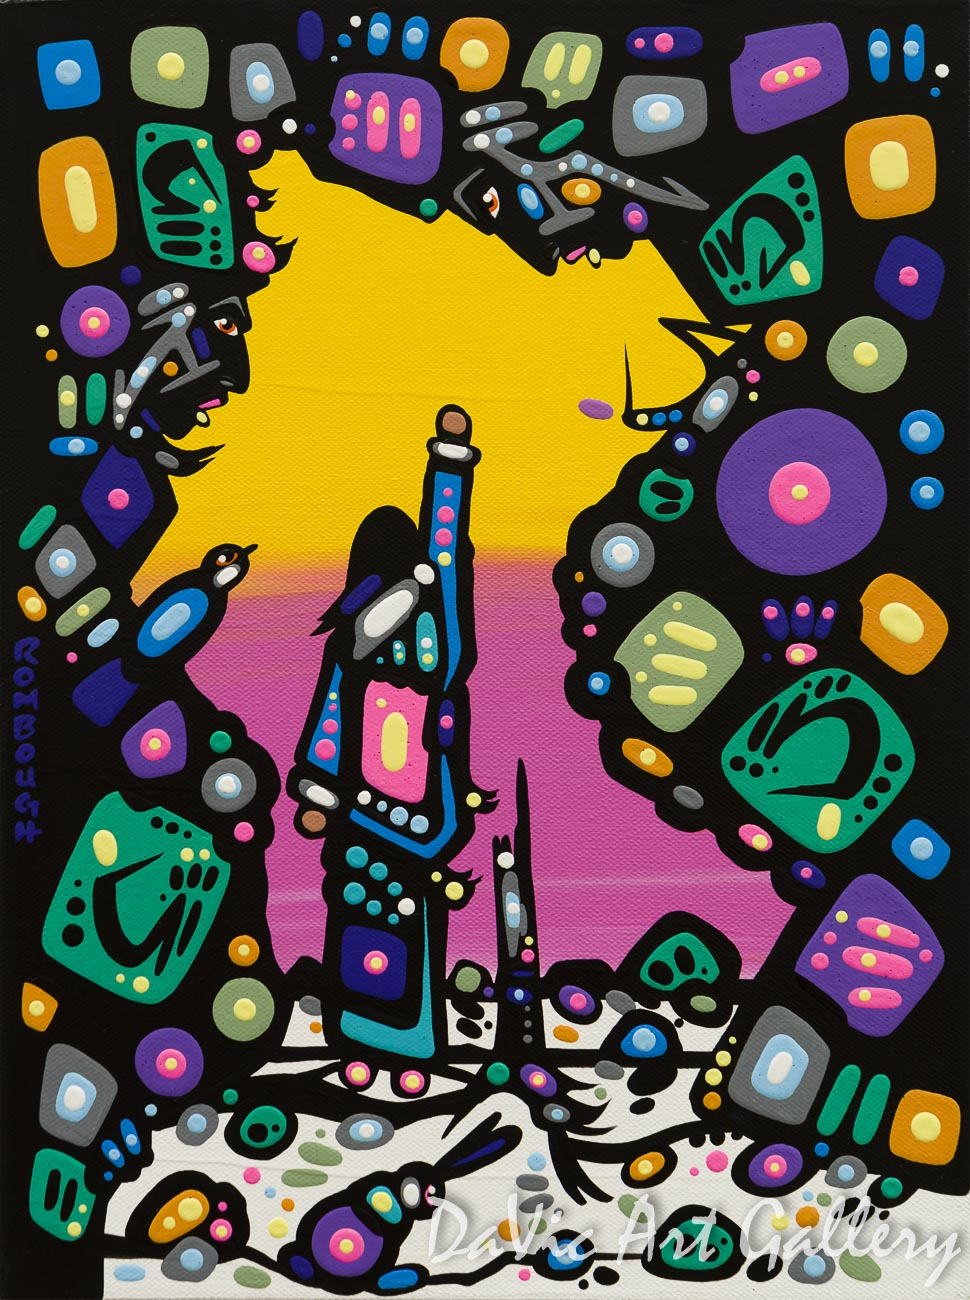 'Presenting Offering' by First Nations Dene artist John Rombough